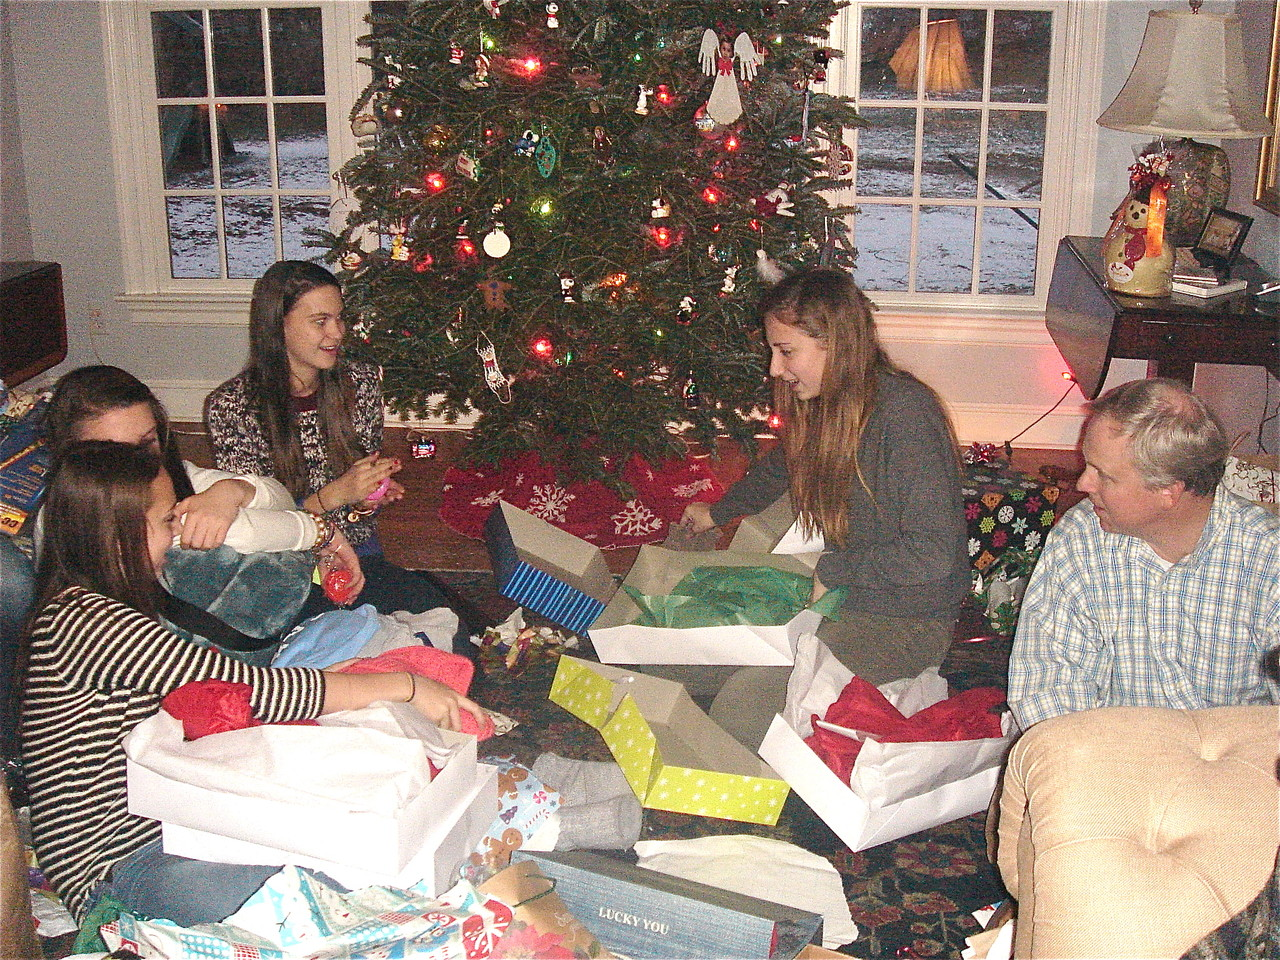 Xmas Day, Kagel family home in Conn., Gabby, Kate, Ellie & Emma open presents while Stuart Jr. looks on